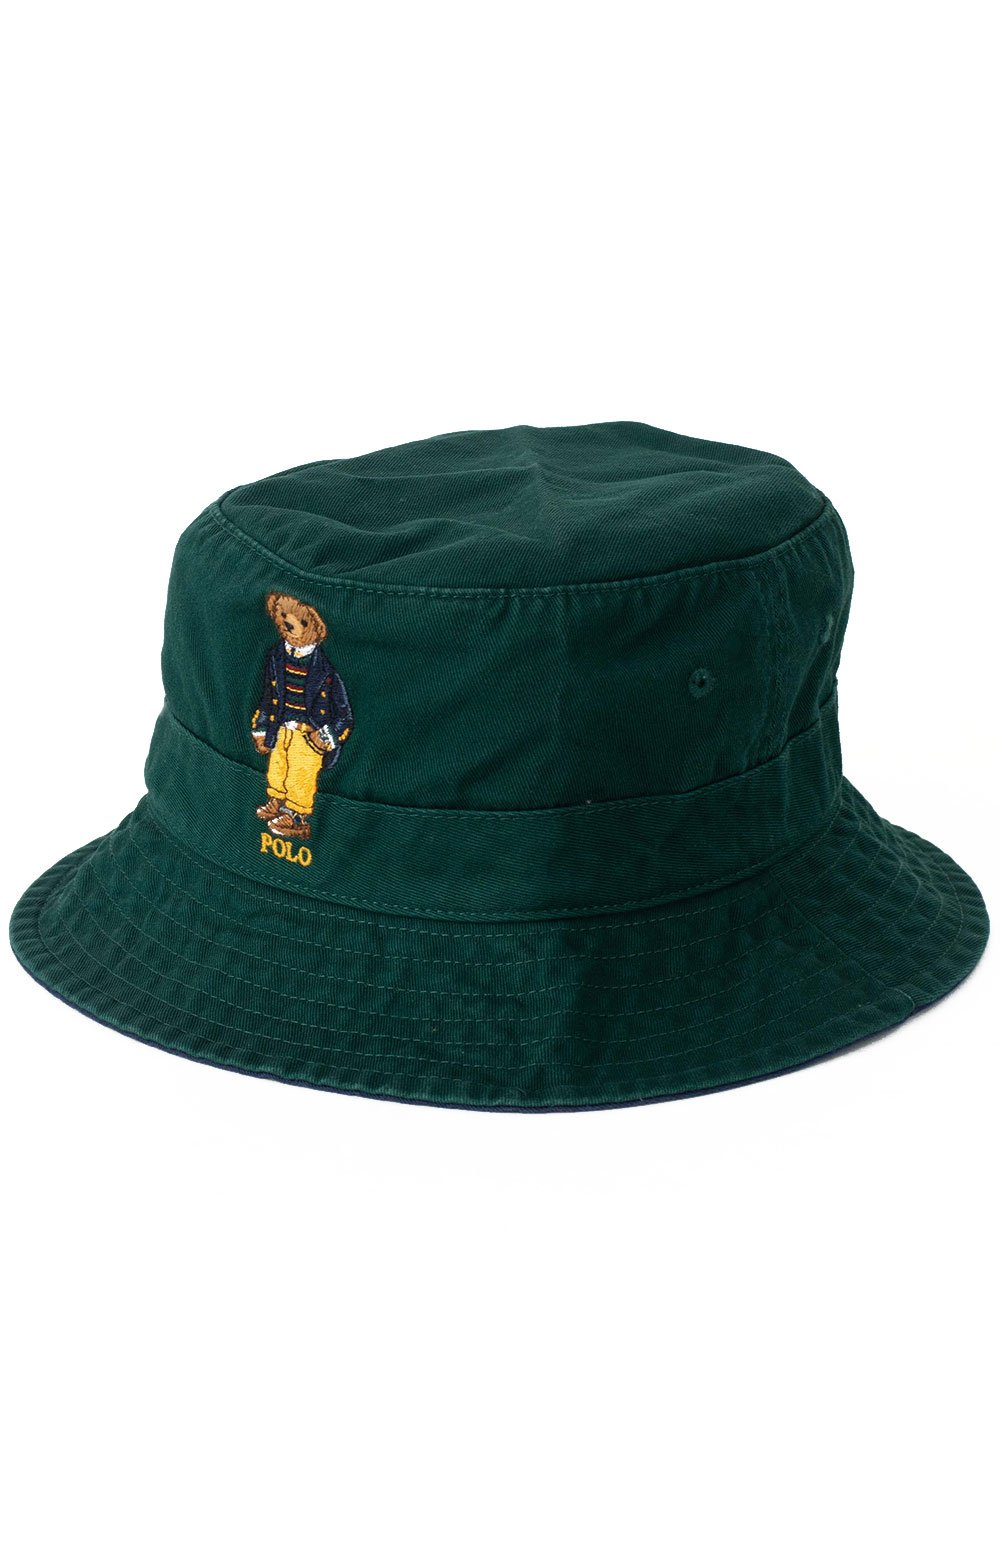 Polo Best Bear Chino Bucket Hat - College Green  2